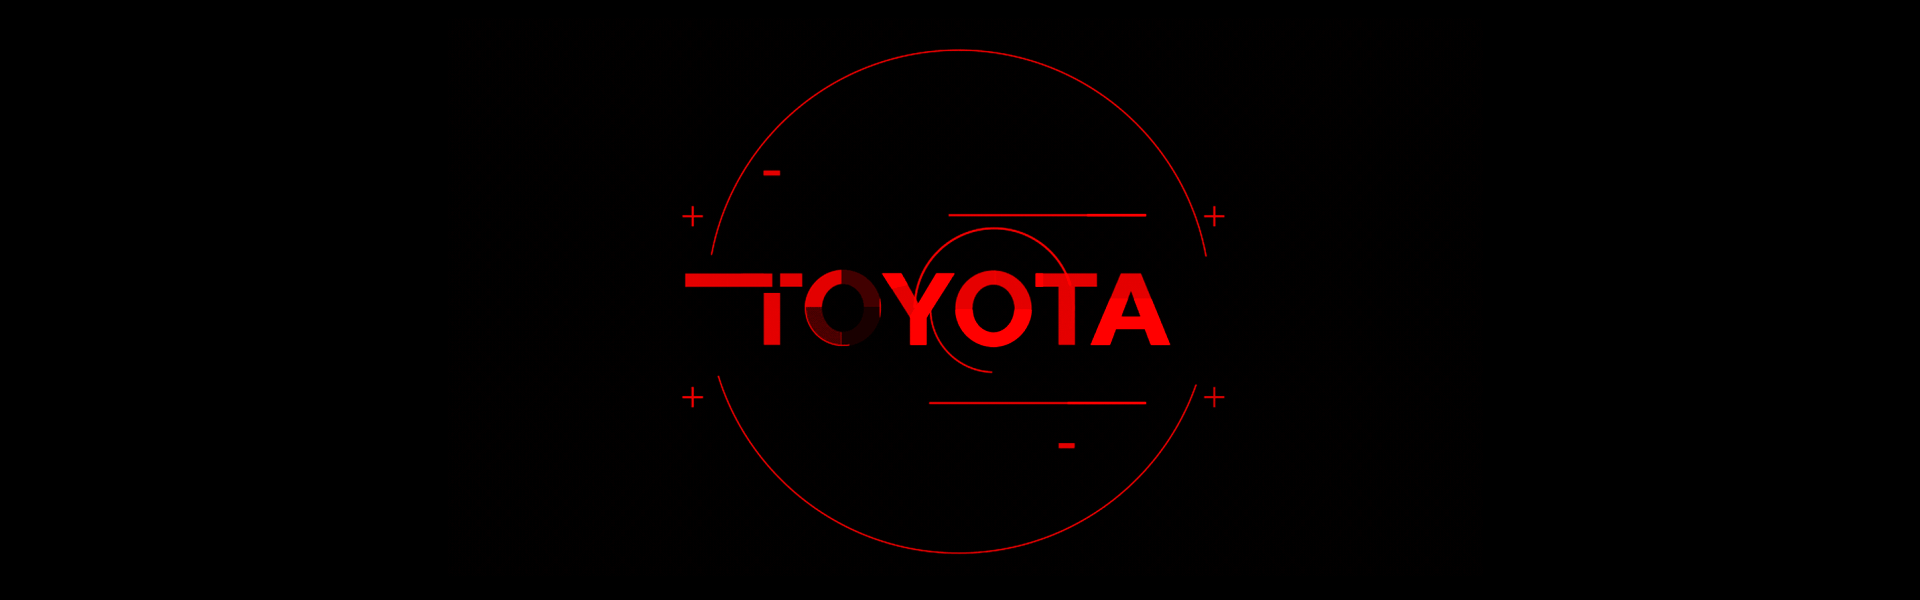 coverToyota 2_000134